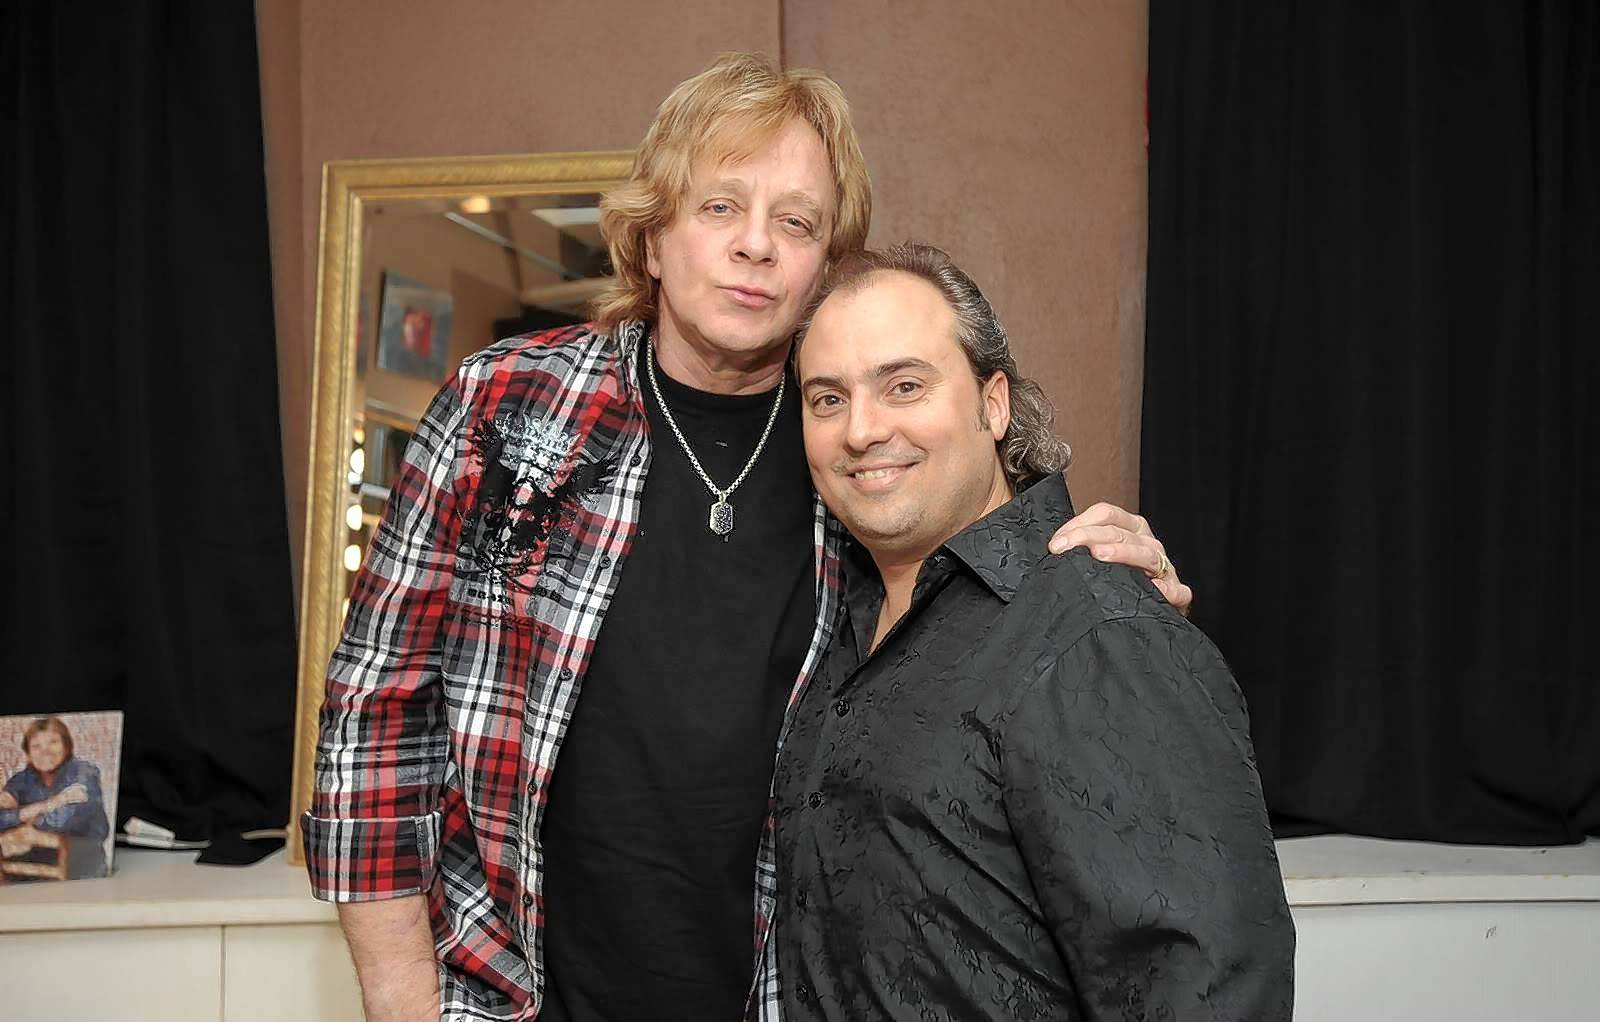 Singer Eddie Money, left, a former New York City police officer, with Arcada Theatre owner Ron Onesti.